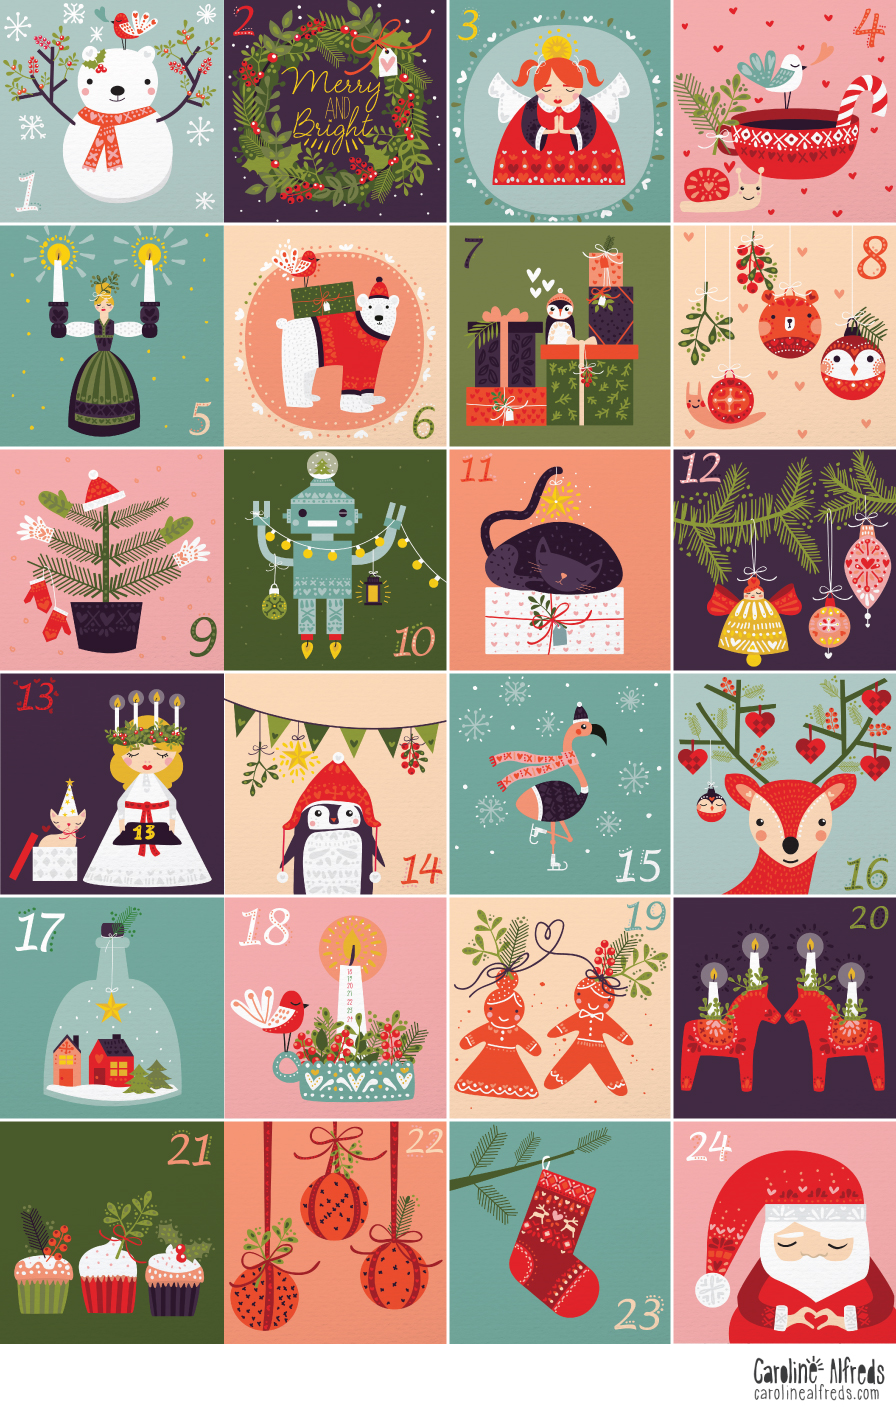 Christmas Calendar Illustration : Illustrated advent calendar